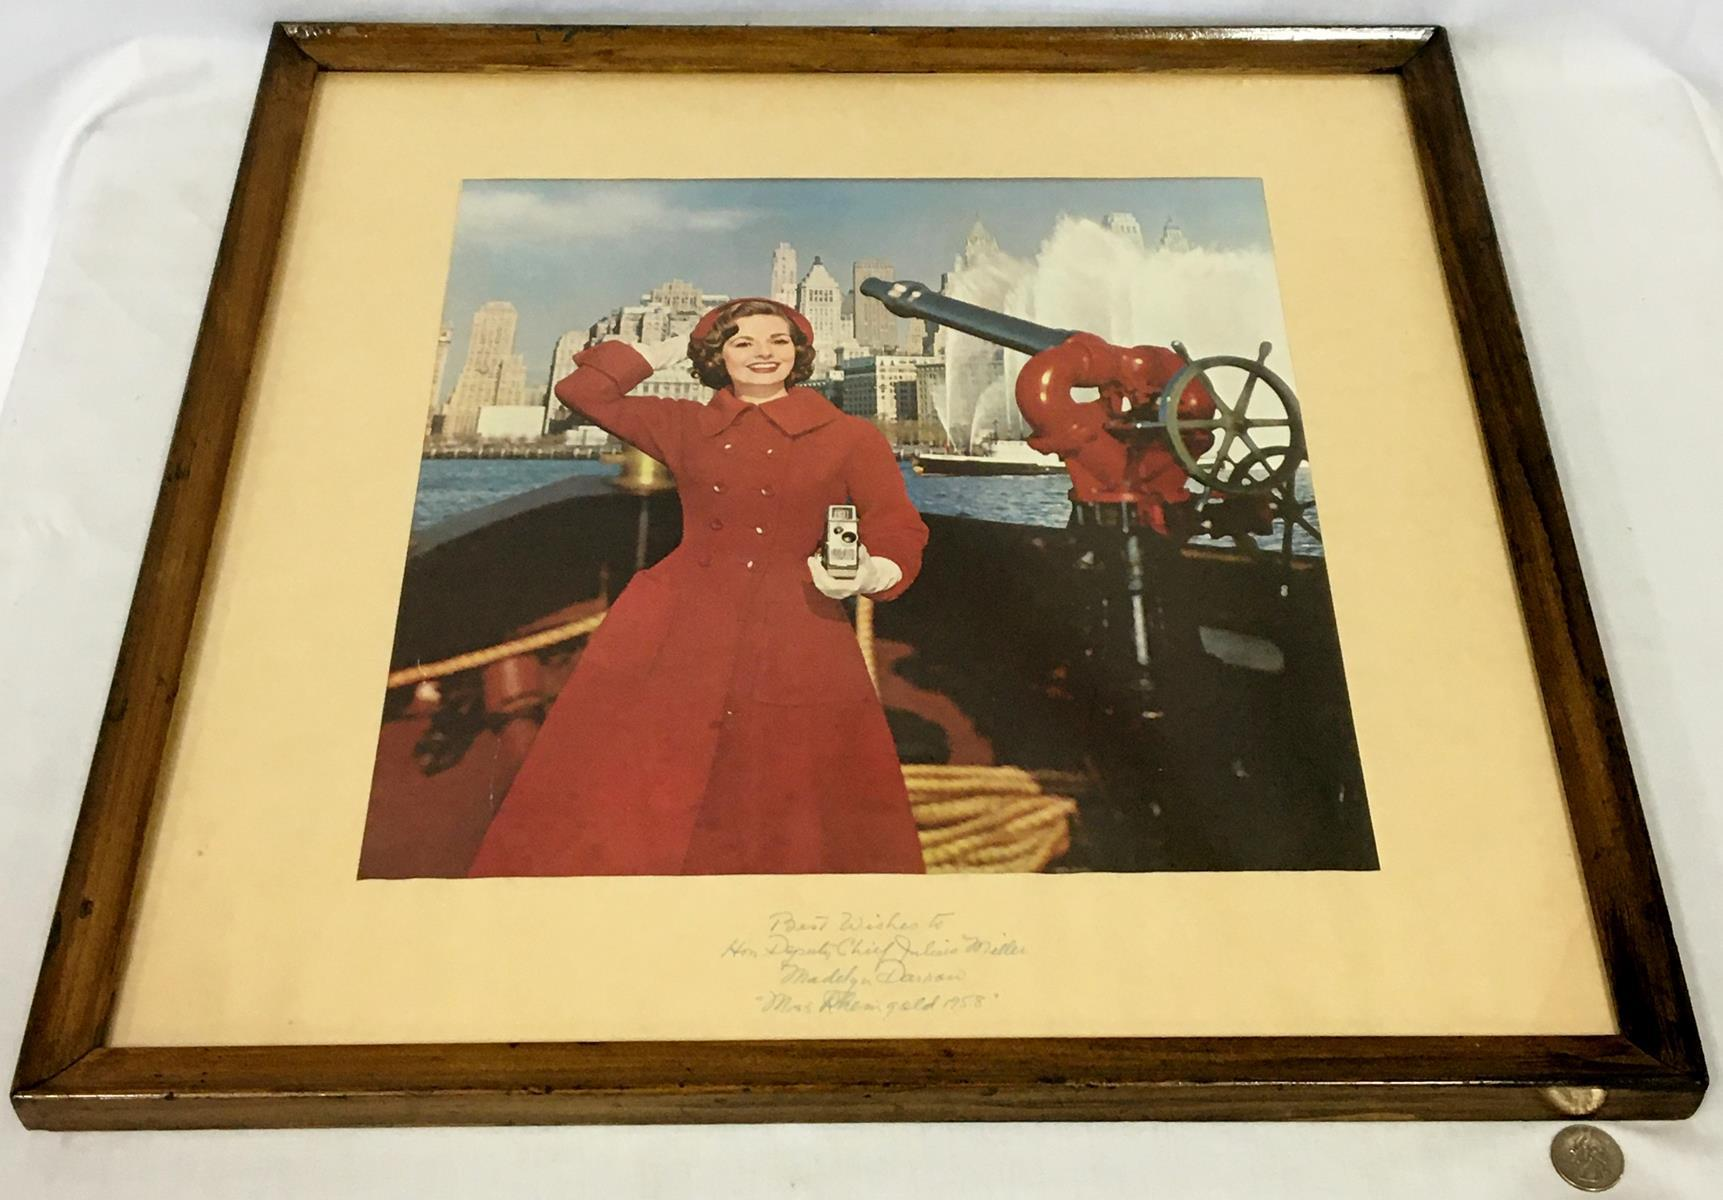 RARE Vintage 1958 Miss Rheingold Beer Madelyn Darrow Autographed Fire Boat Picture FRAMED